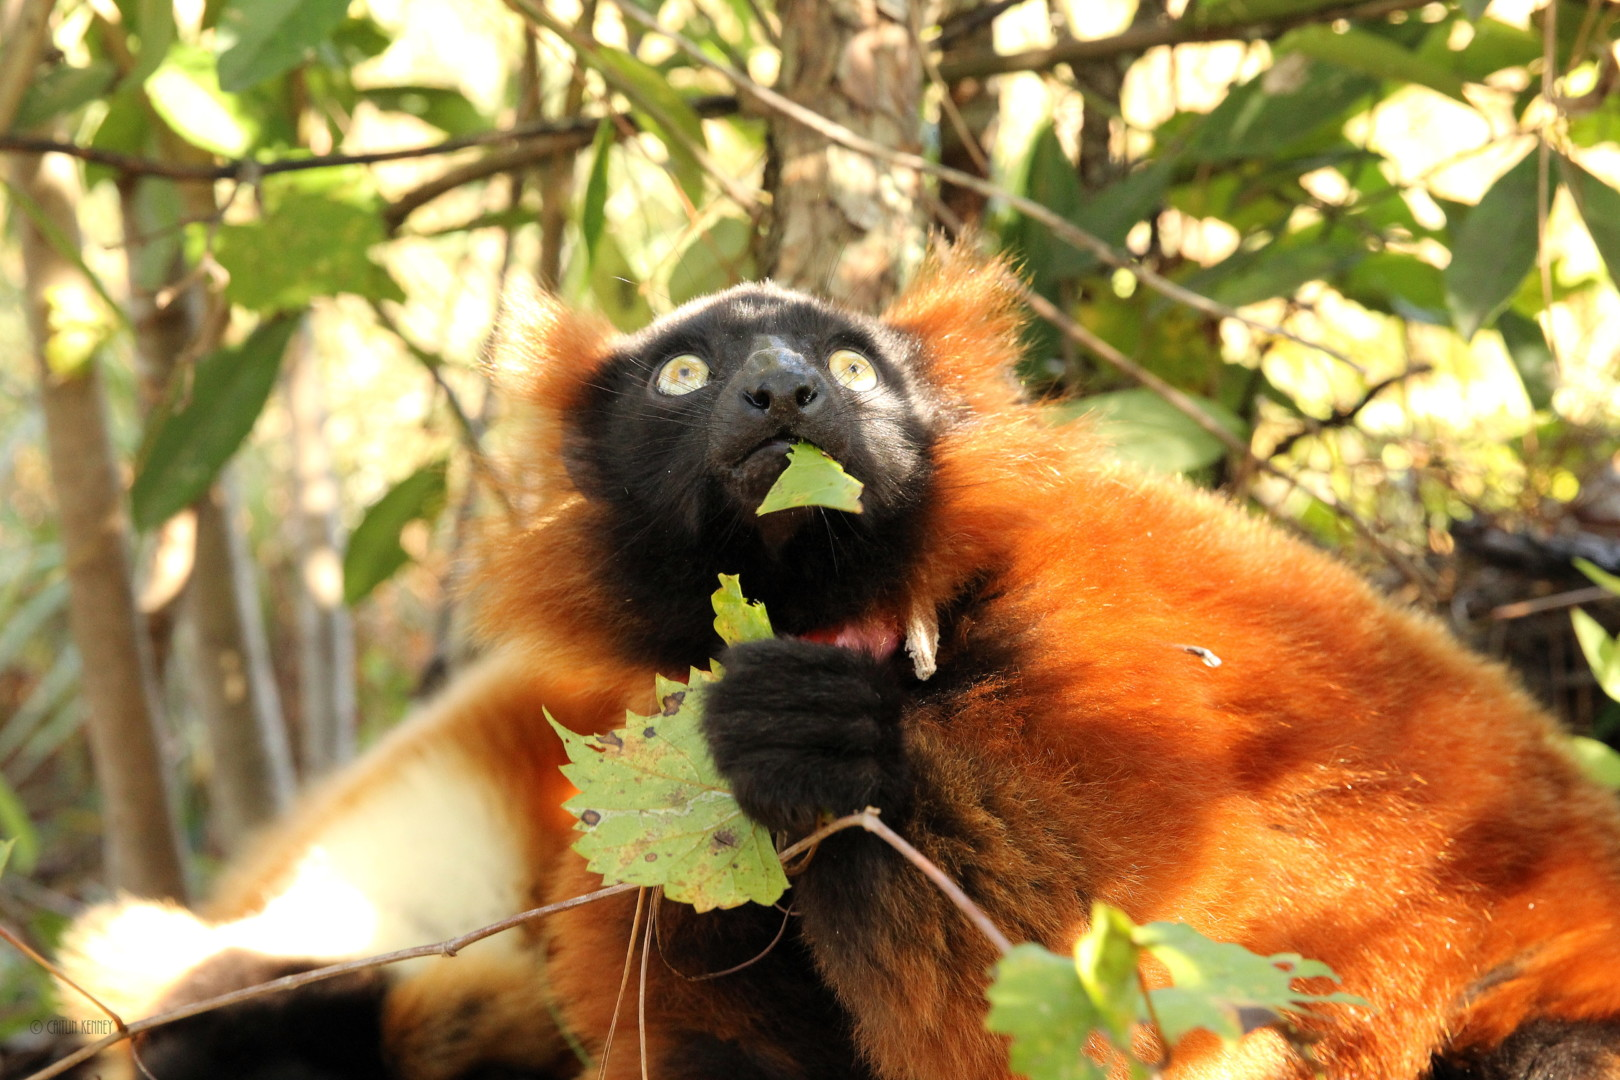 Juvenile red ruffed lemur eating grapevine and looking up nervously